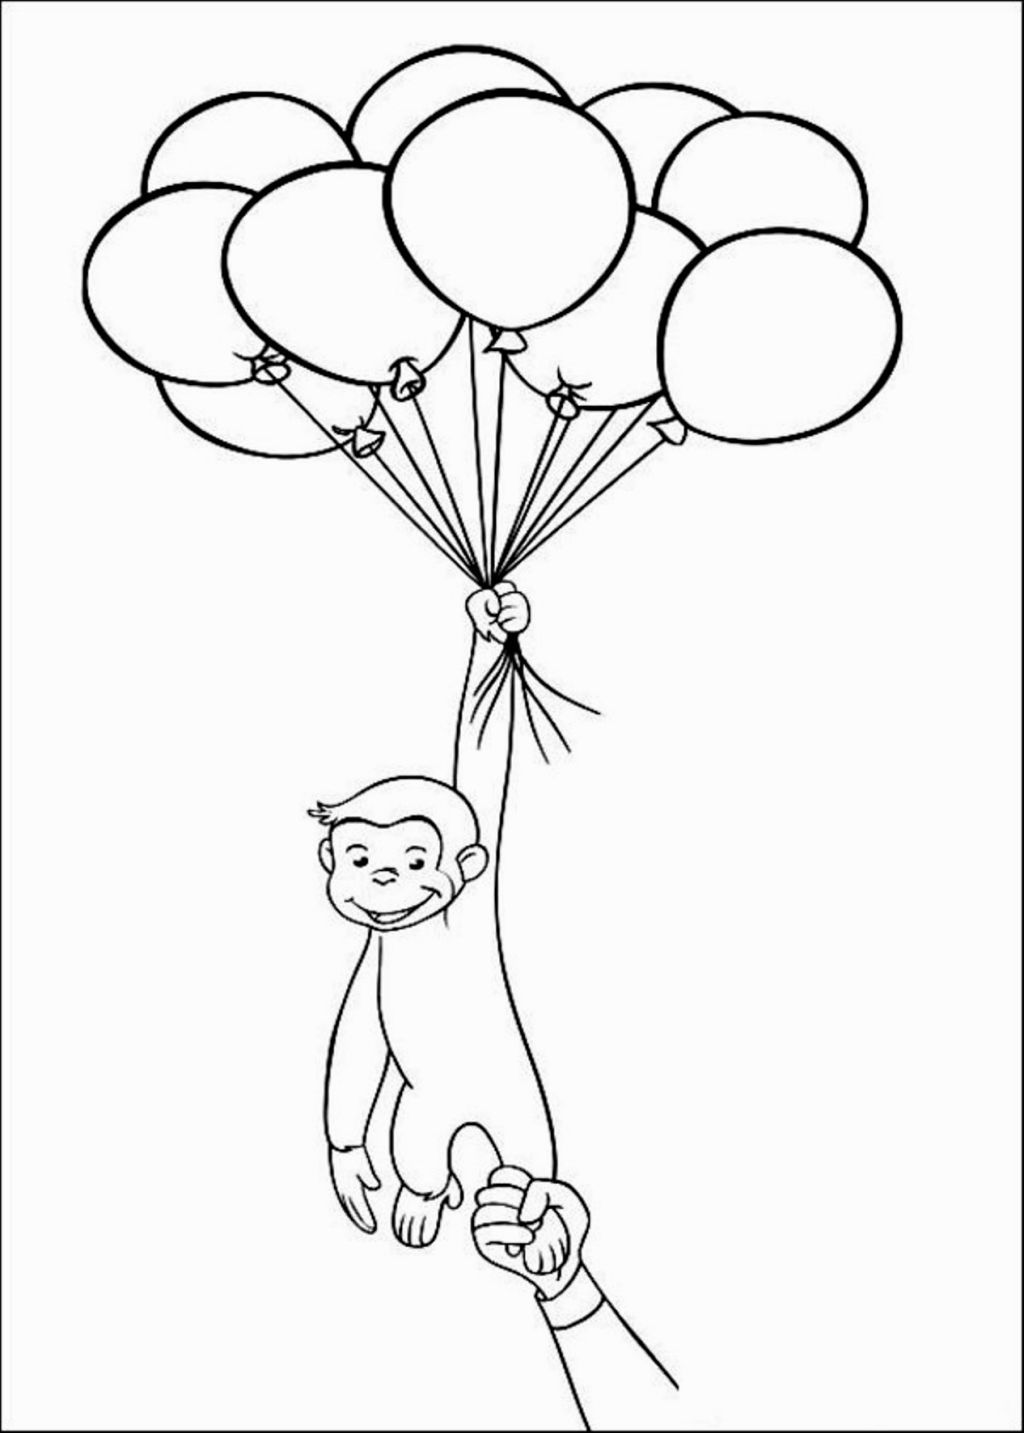 Curious George Coloring Pages | Coloring Pages | Pinterest | Curious ...